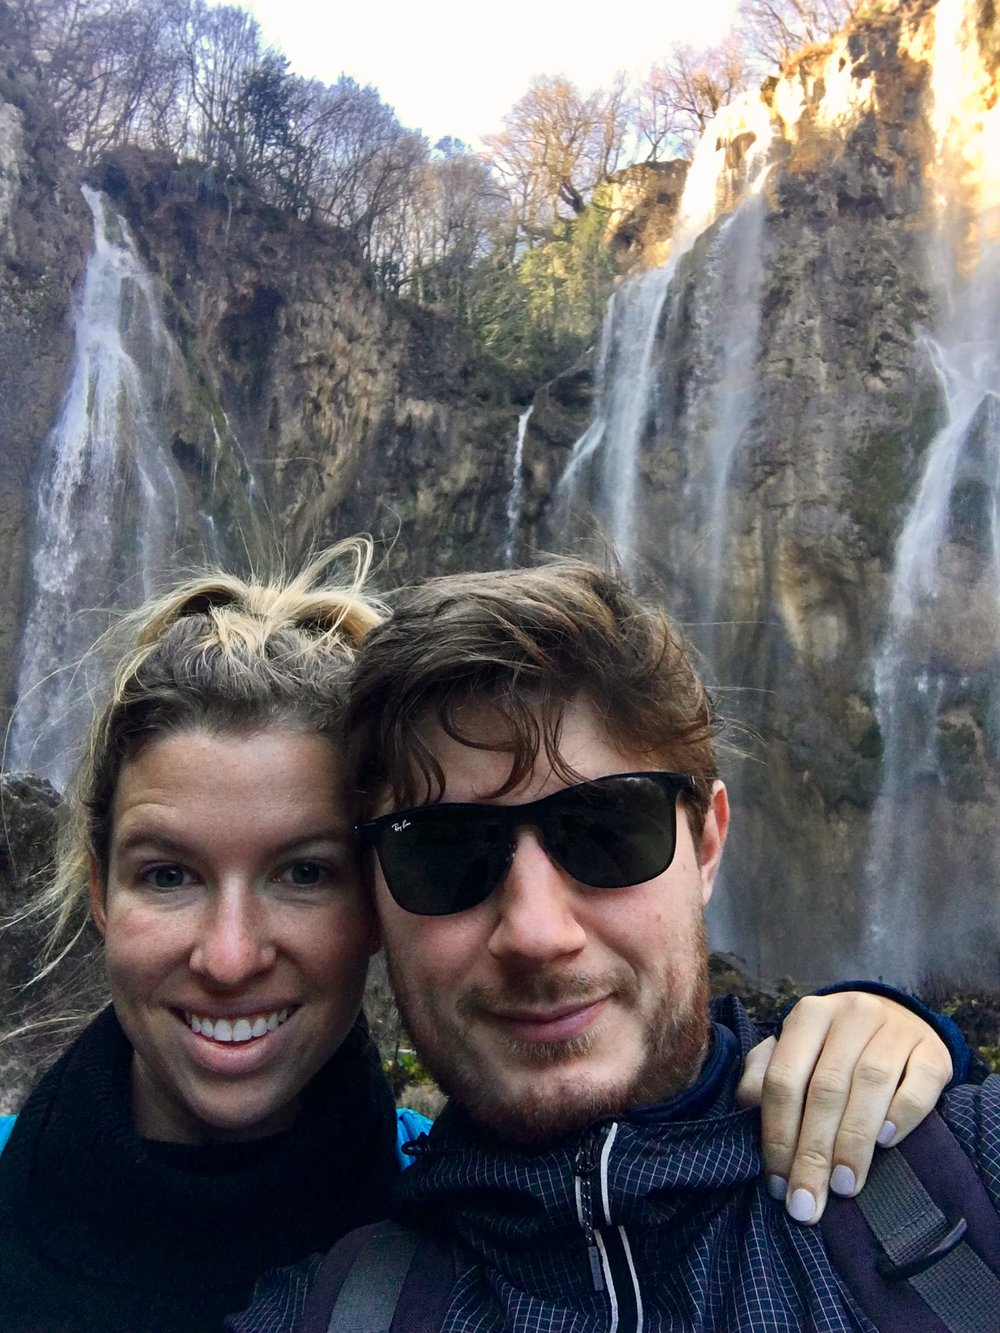 With the boo by a 'slap'. The word for 'waterfall' in Croatian is 'slap'. That's funny. He makes me giggle.